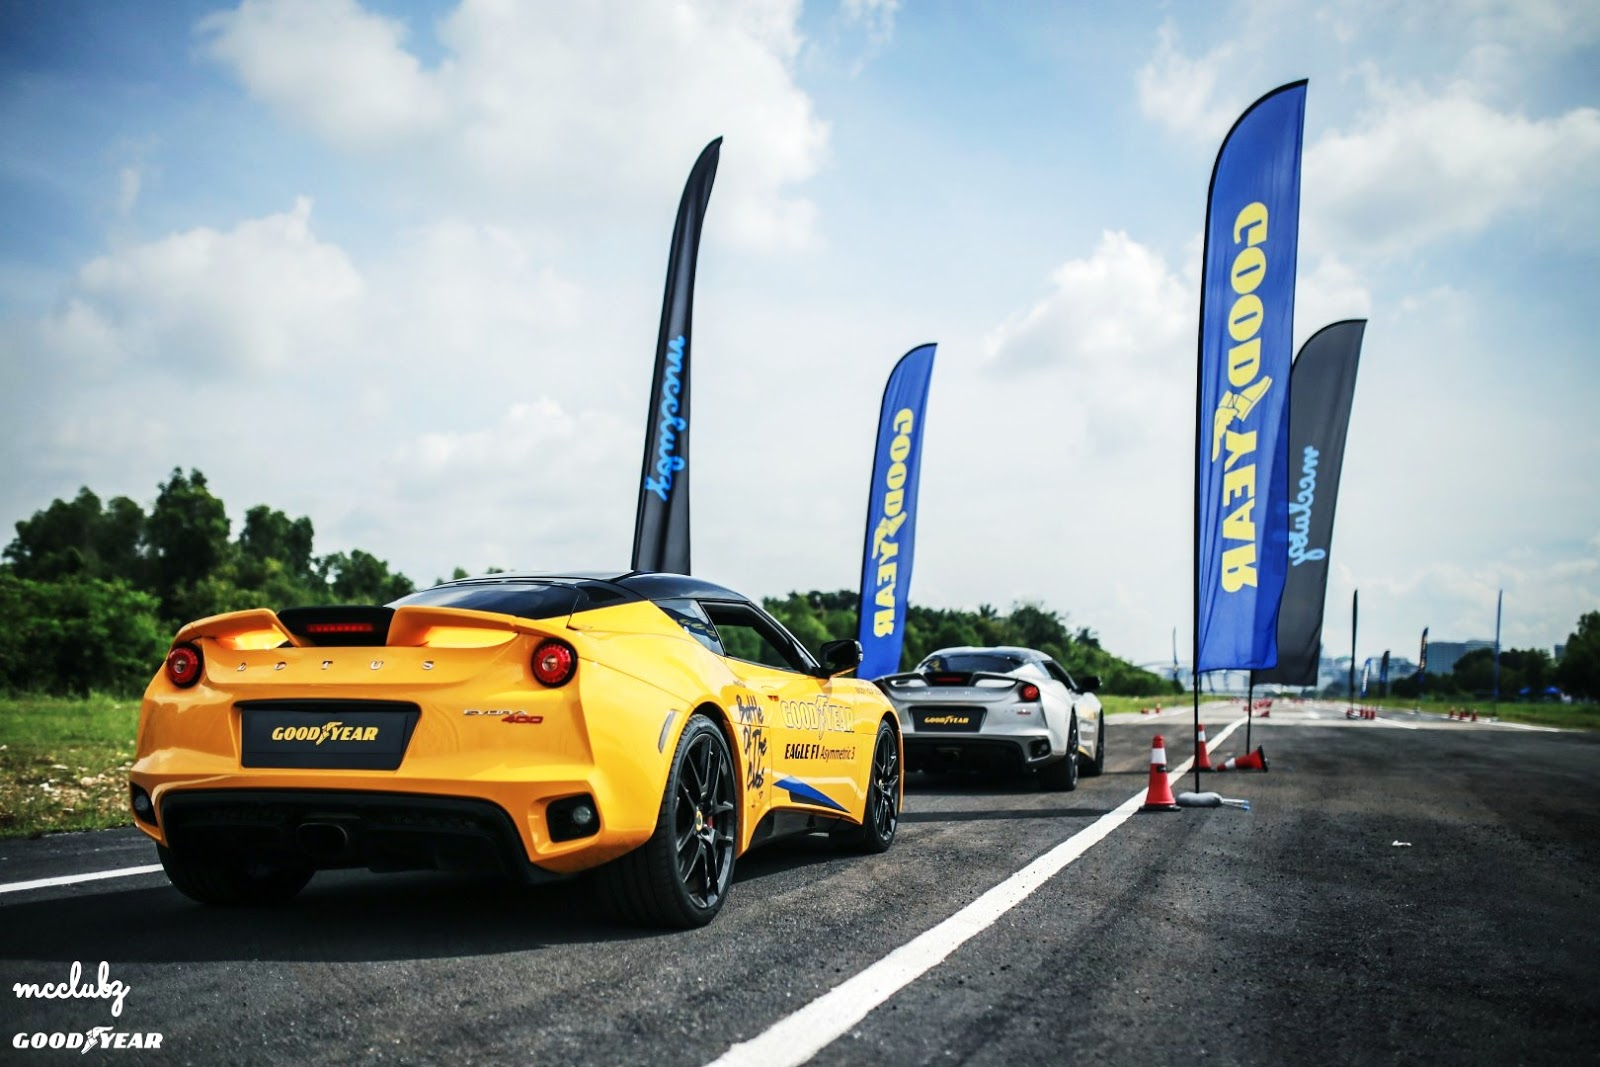 Goodyear Car >> Motoring Malaysia Happenings Battle Of The Clubs 2017 Goodyear